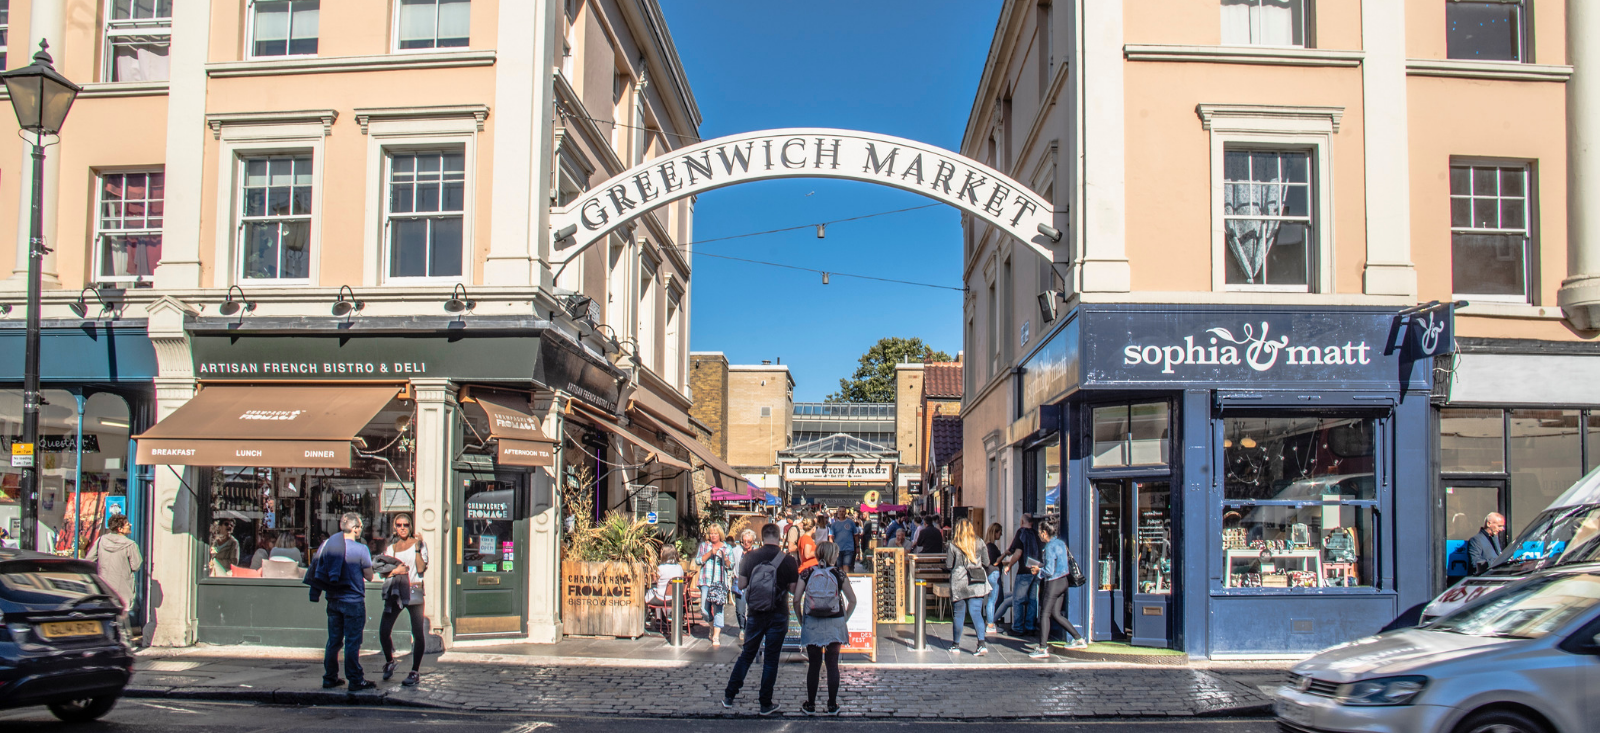 Greenwich Market - The William Agency Portfolio- Social Media Management